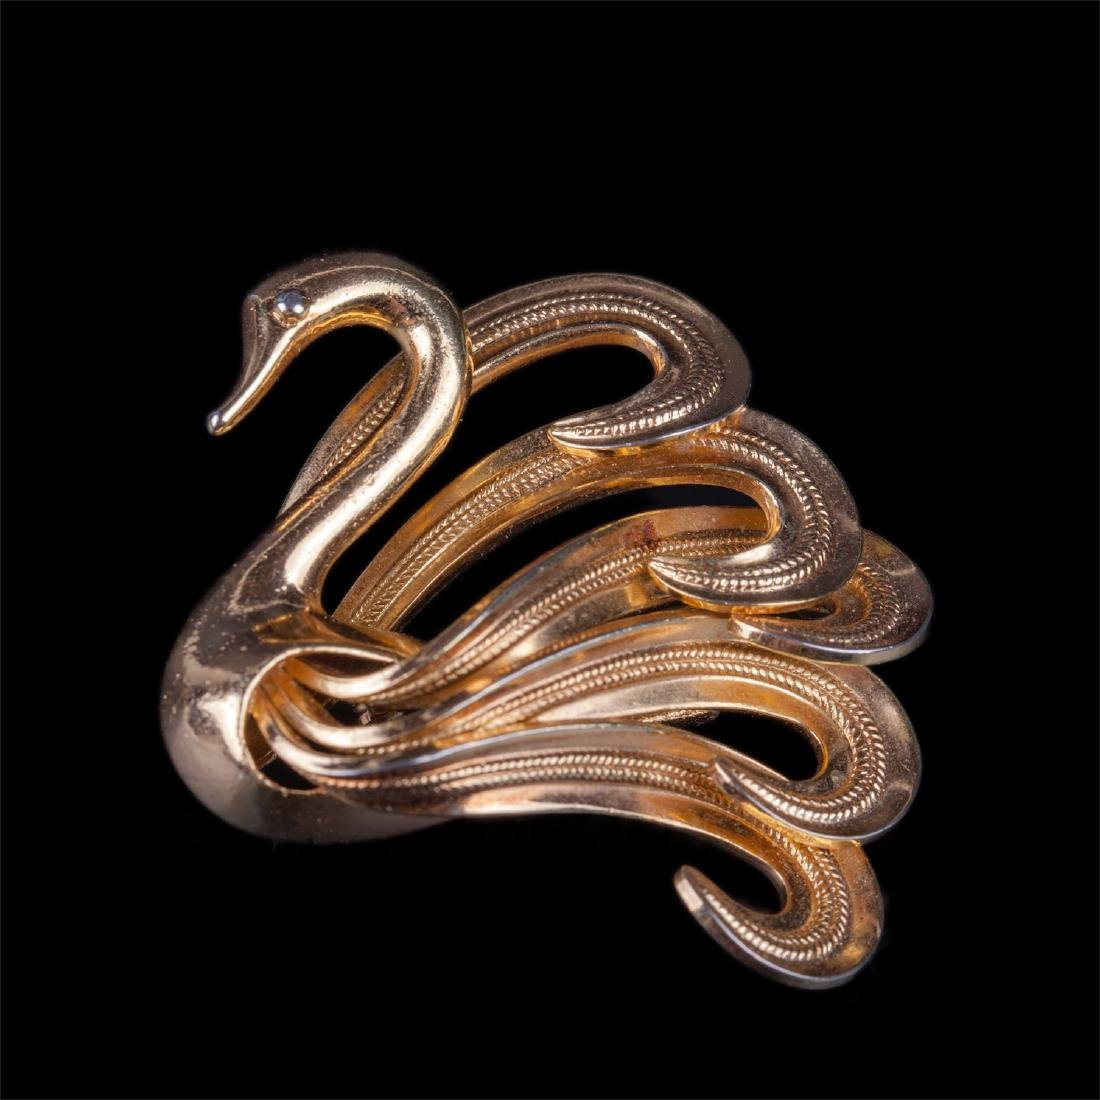 Dior brooch in the shape of swan. 1968